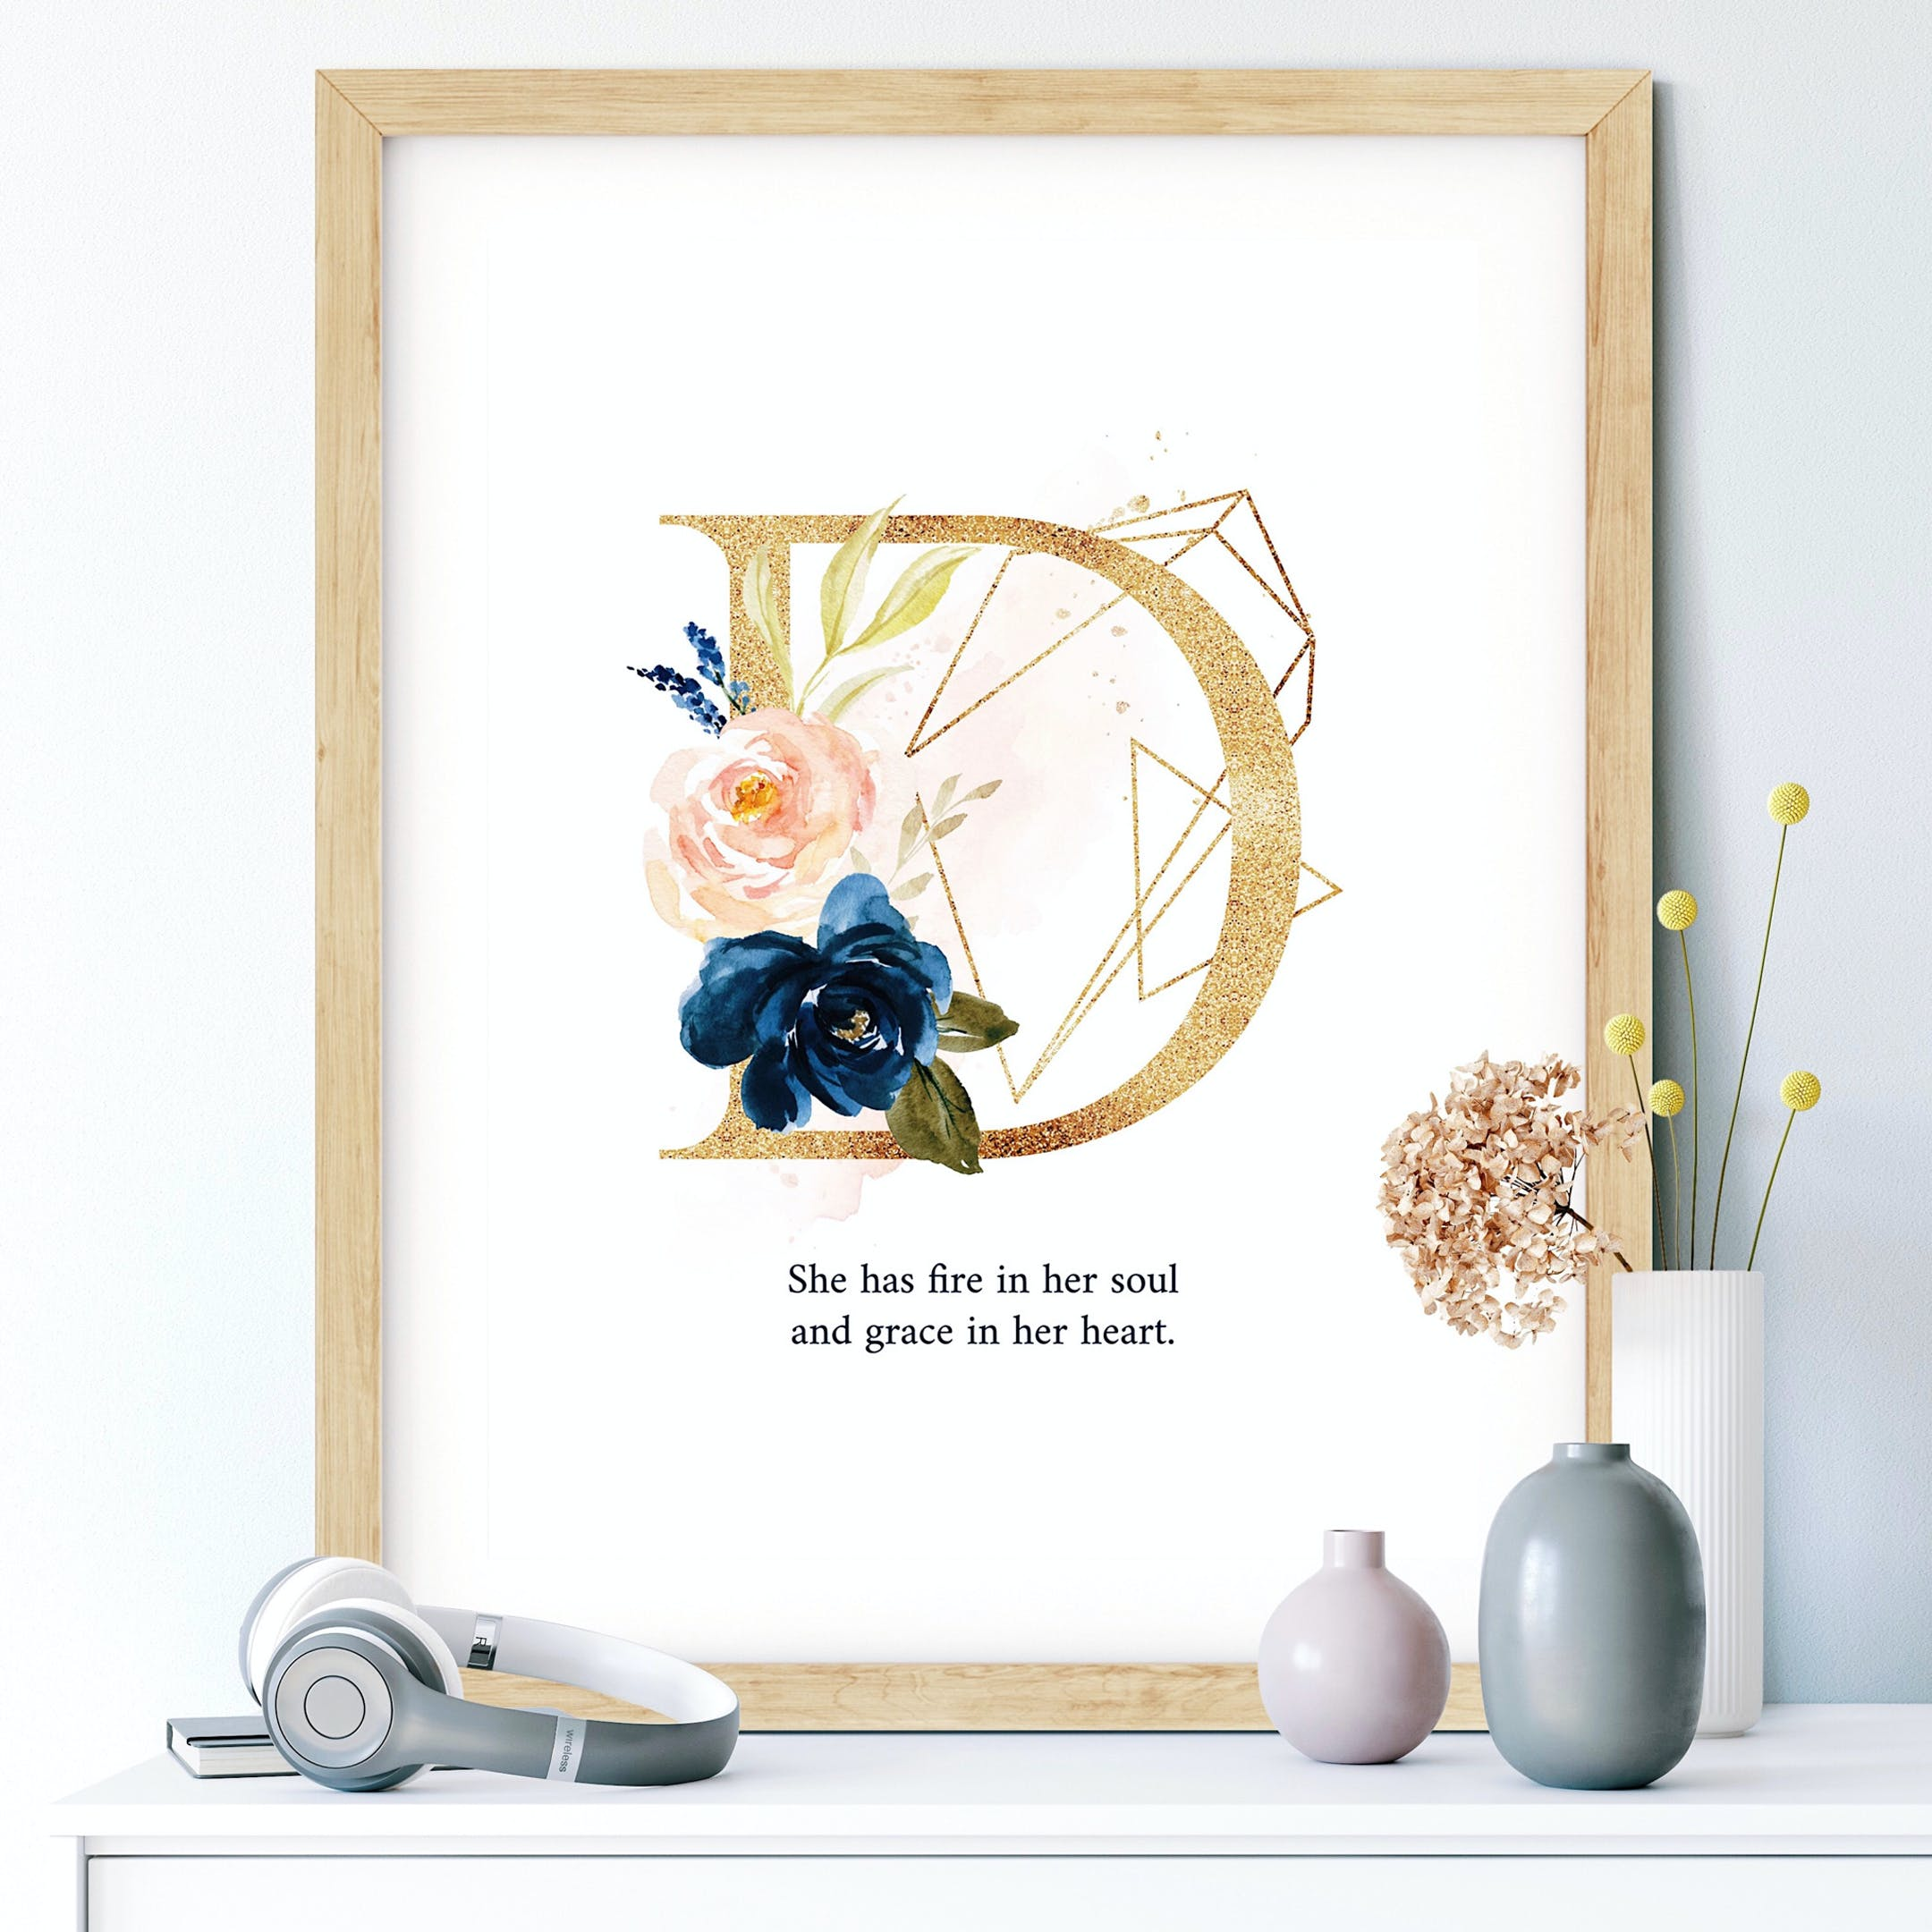 D She Has Fire In Her Soul And Grace In Her Heart Personalised Print - Izzy & Pop